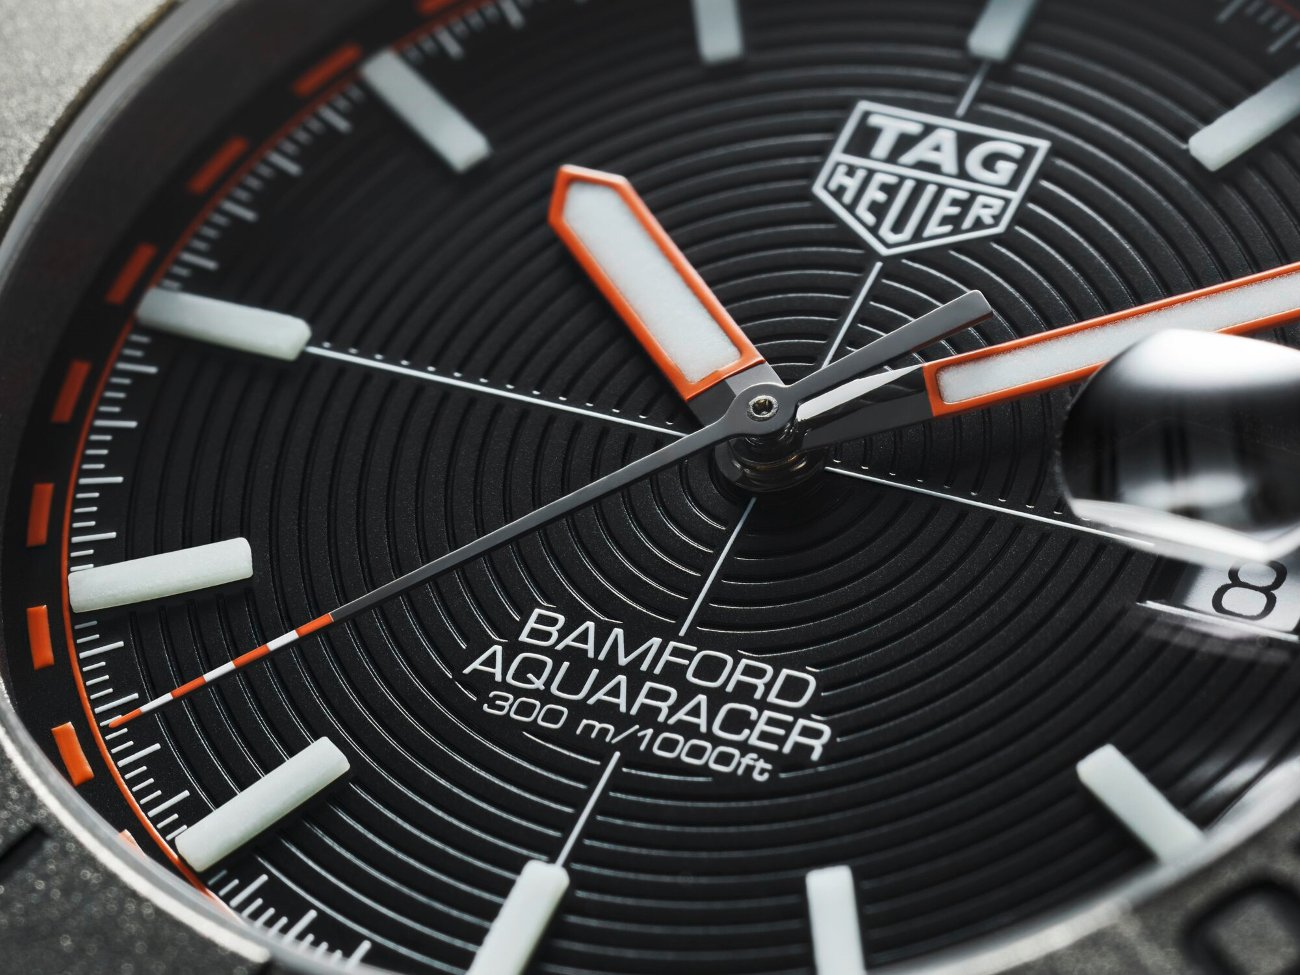 TAG_heuer_bramford_close-_europa_star_watch_magazine_2020